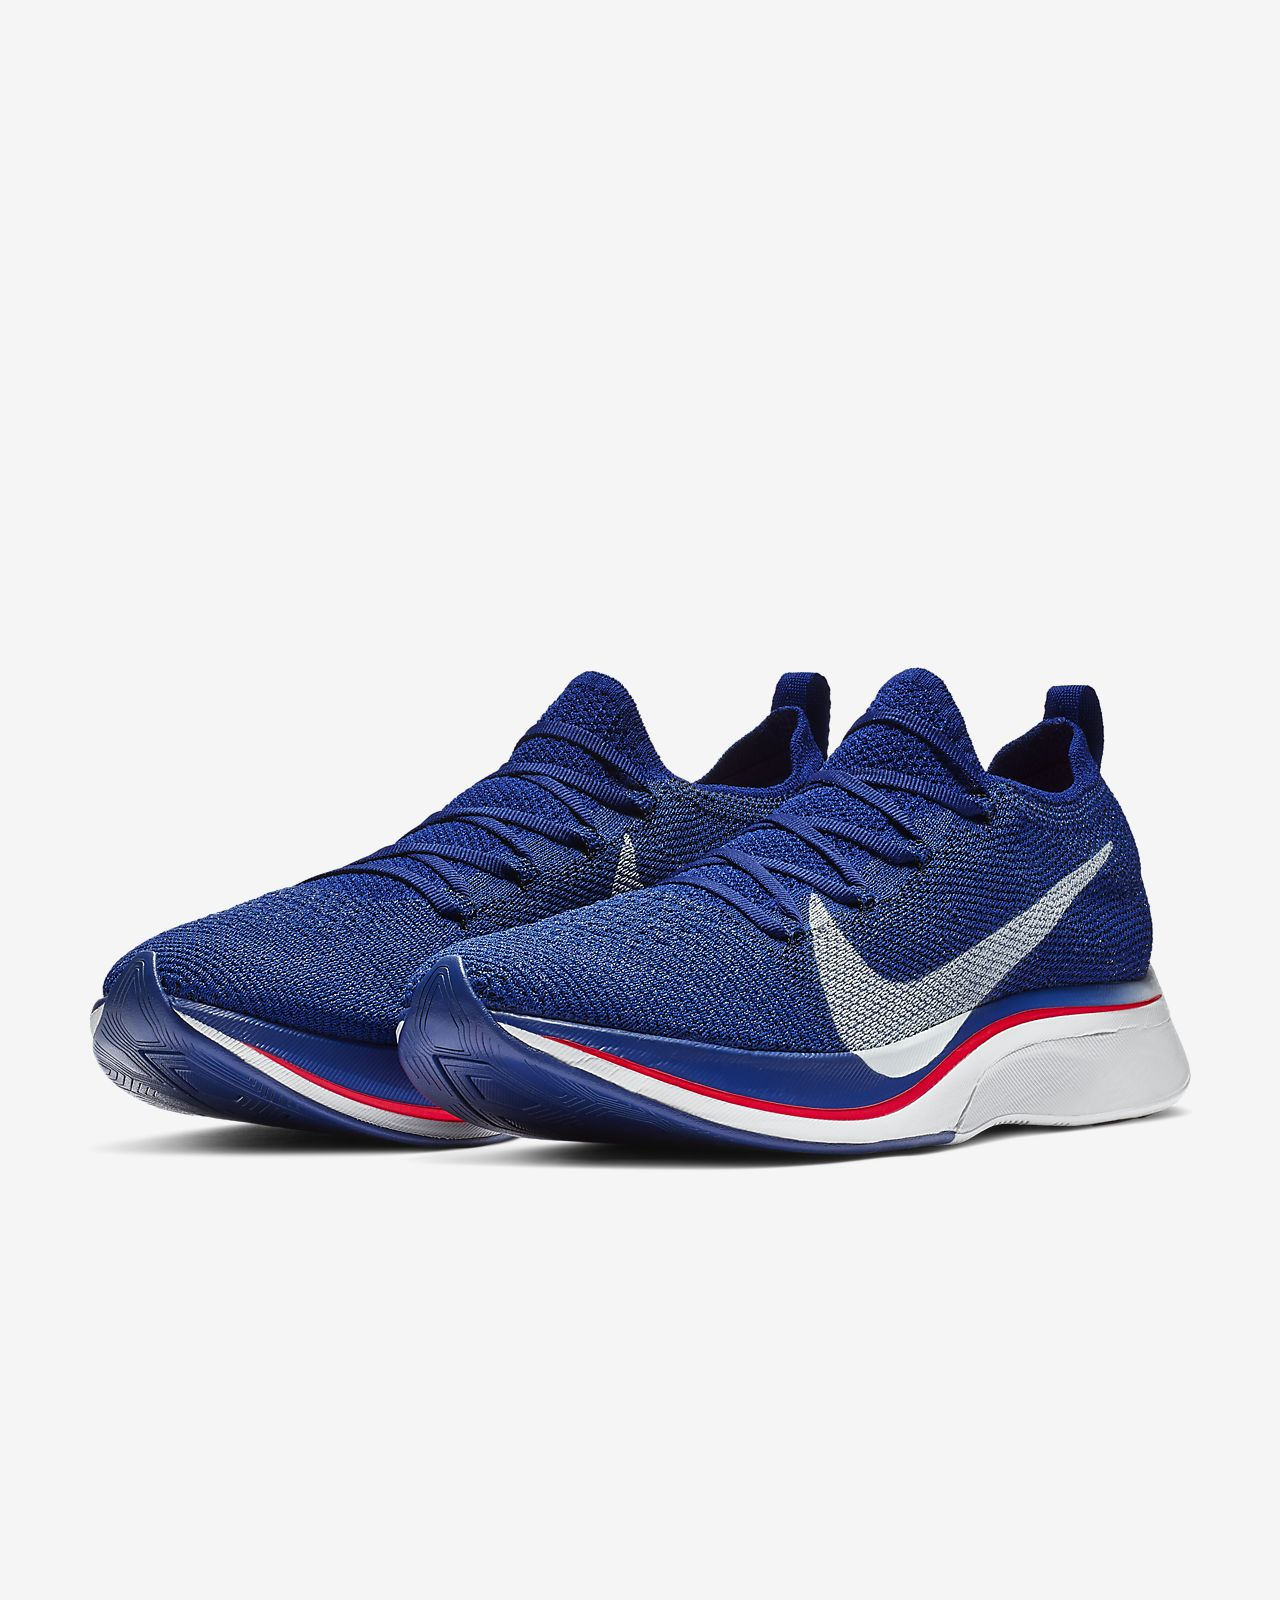 on sale 1d184 e0f6a ... Nike Vaporfly 4% Flyknit Running Shoe